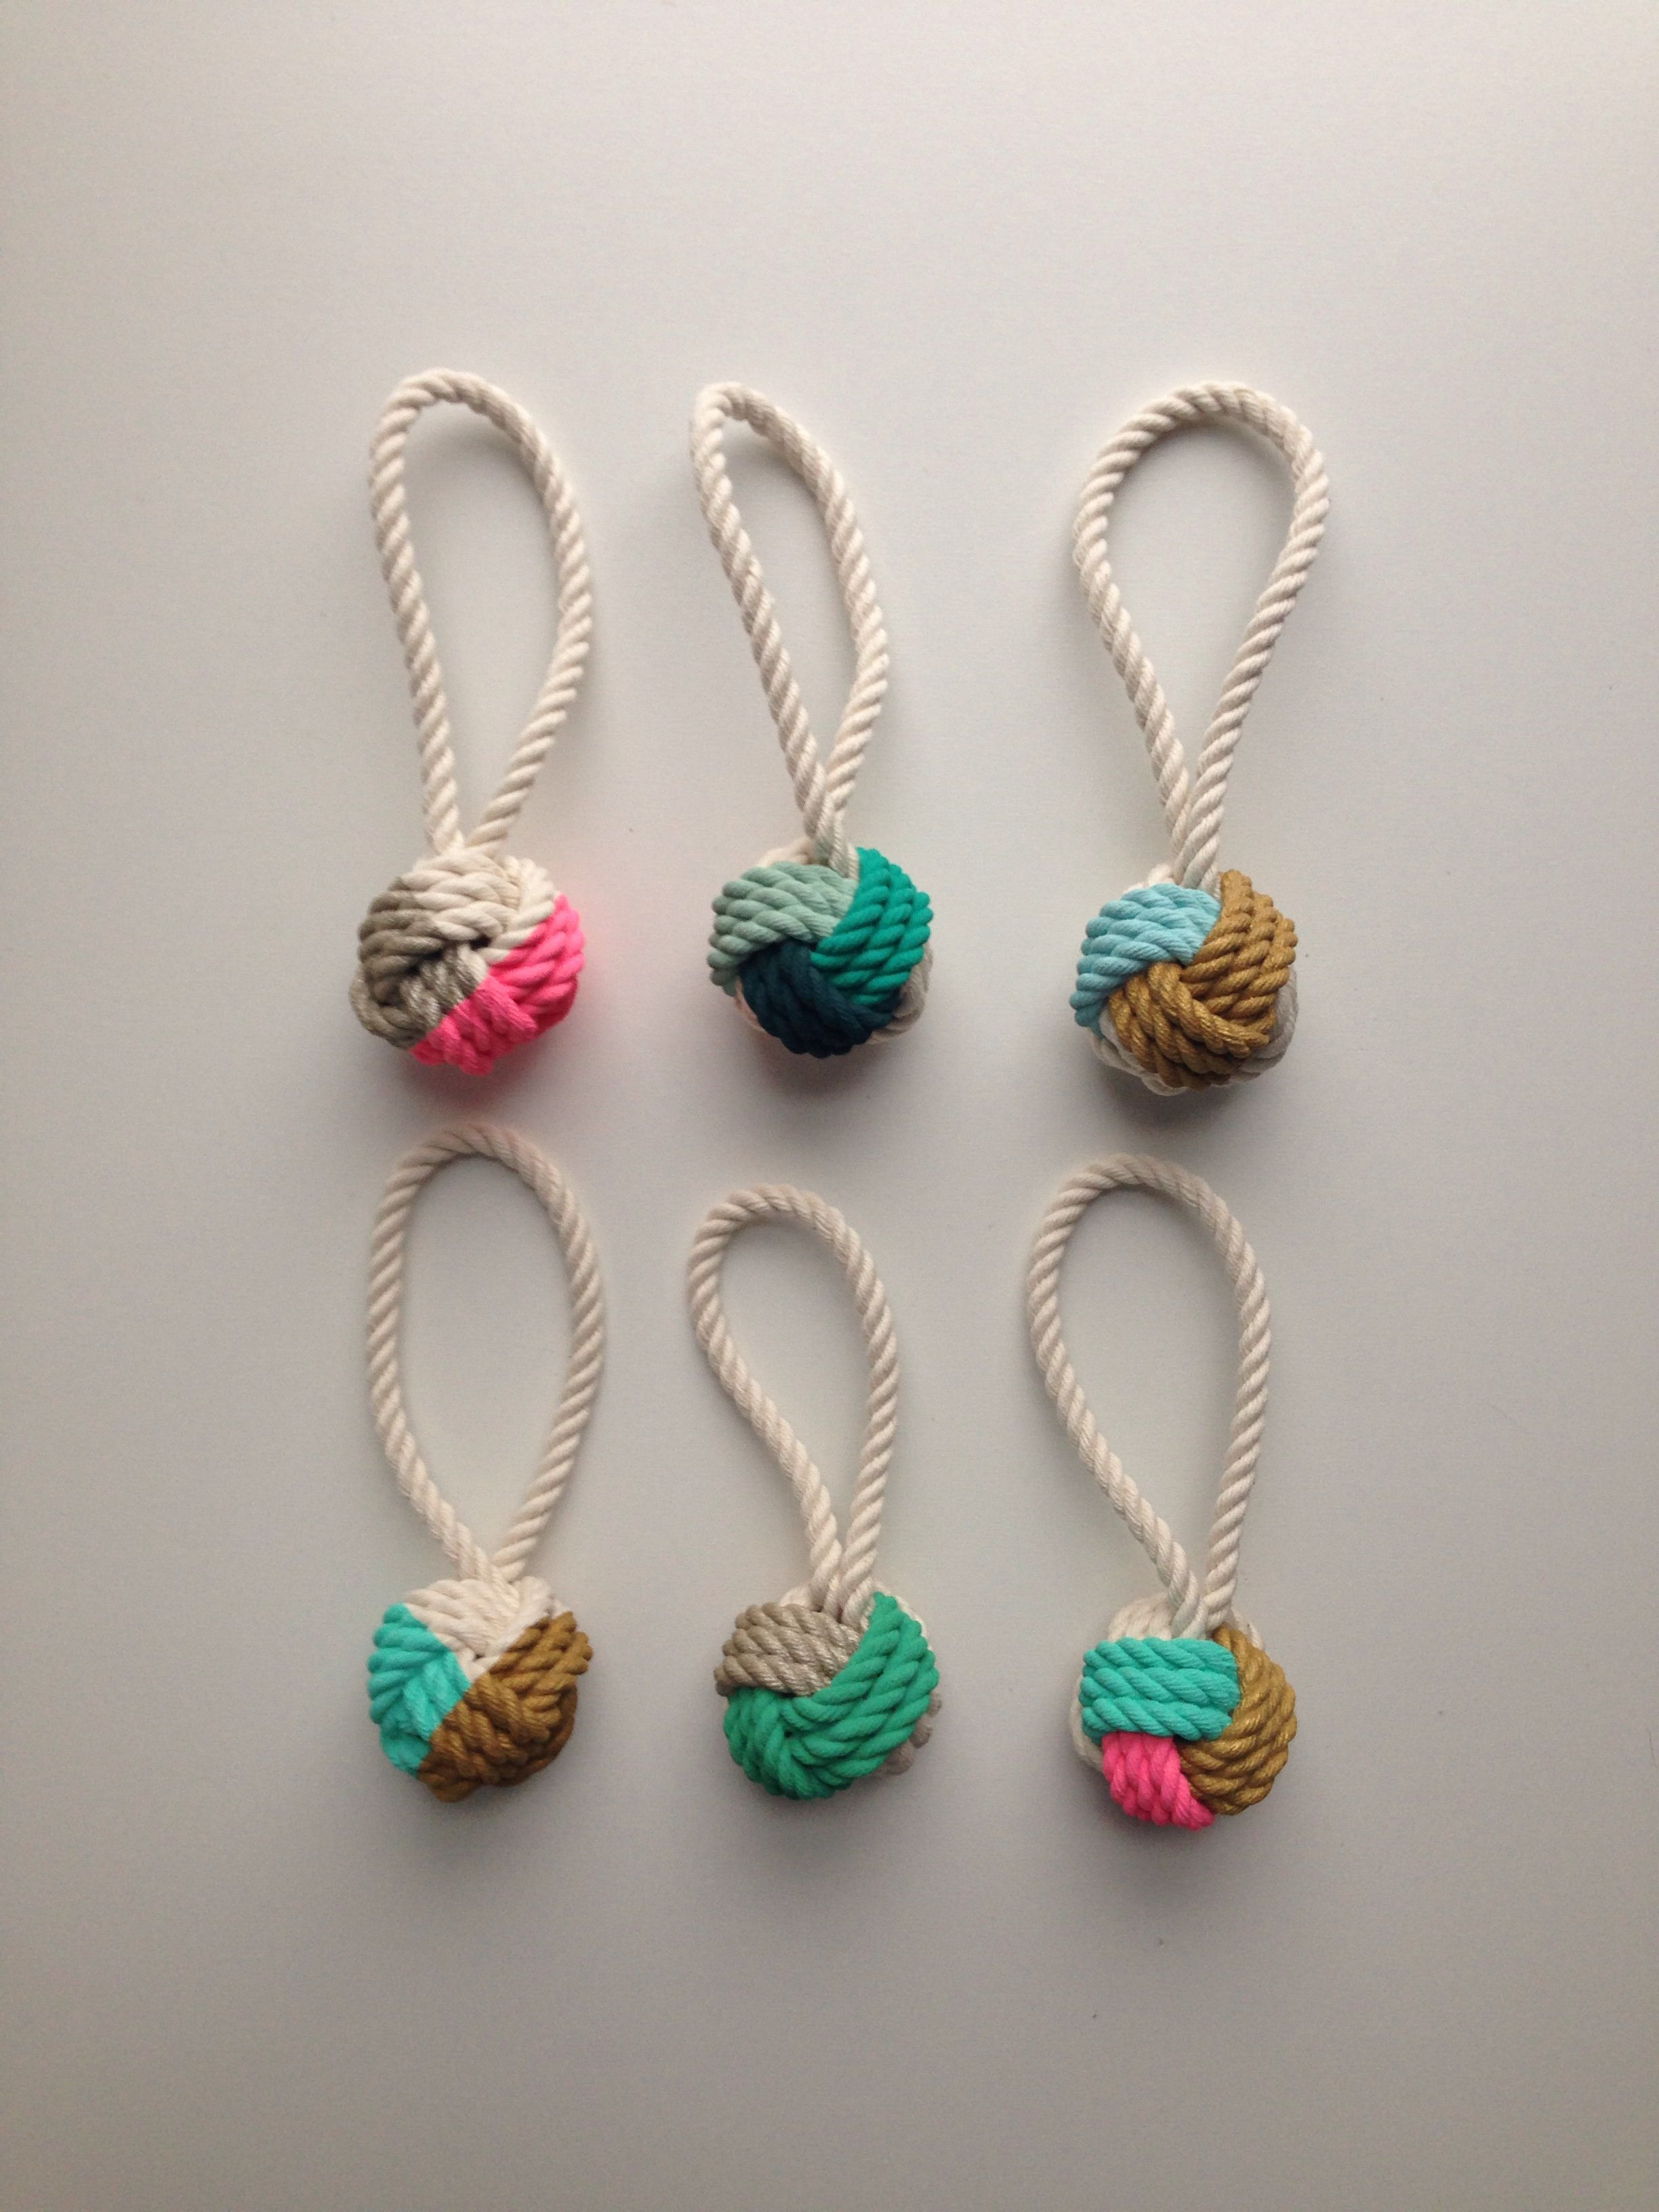 Hand-Painted Monkey's Fist Knot Ornaments - Made by Cassandra Smith